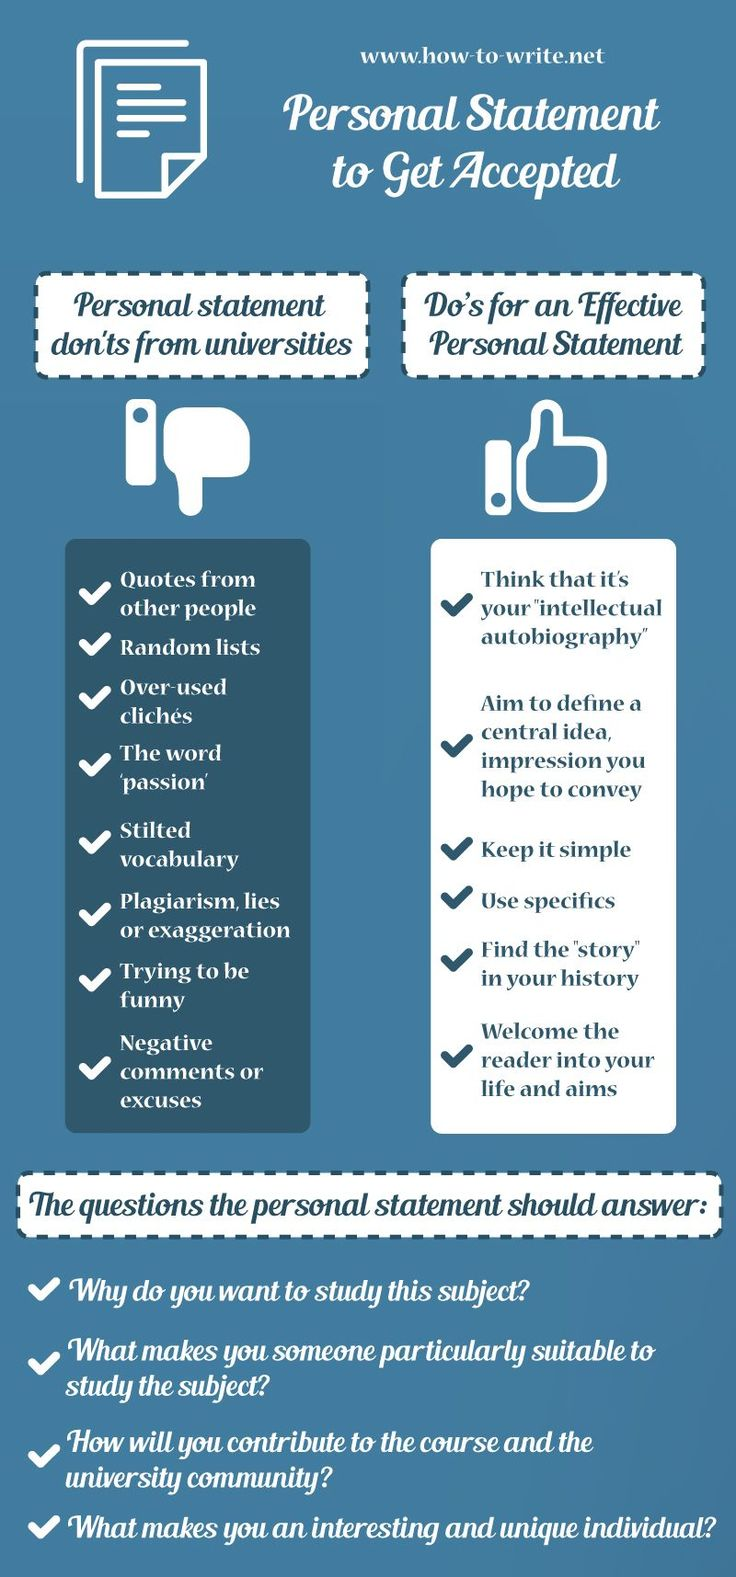 best ideas about personal statements graduate this infographic presentation presents about how to write a personal statement to get accepted to get the best information please here